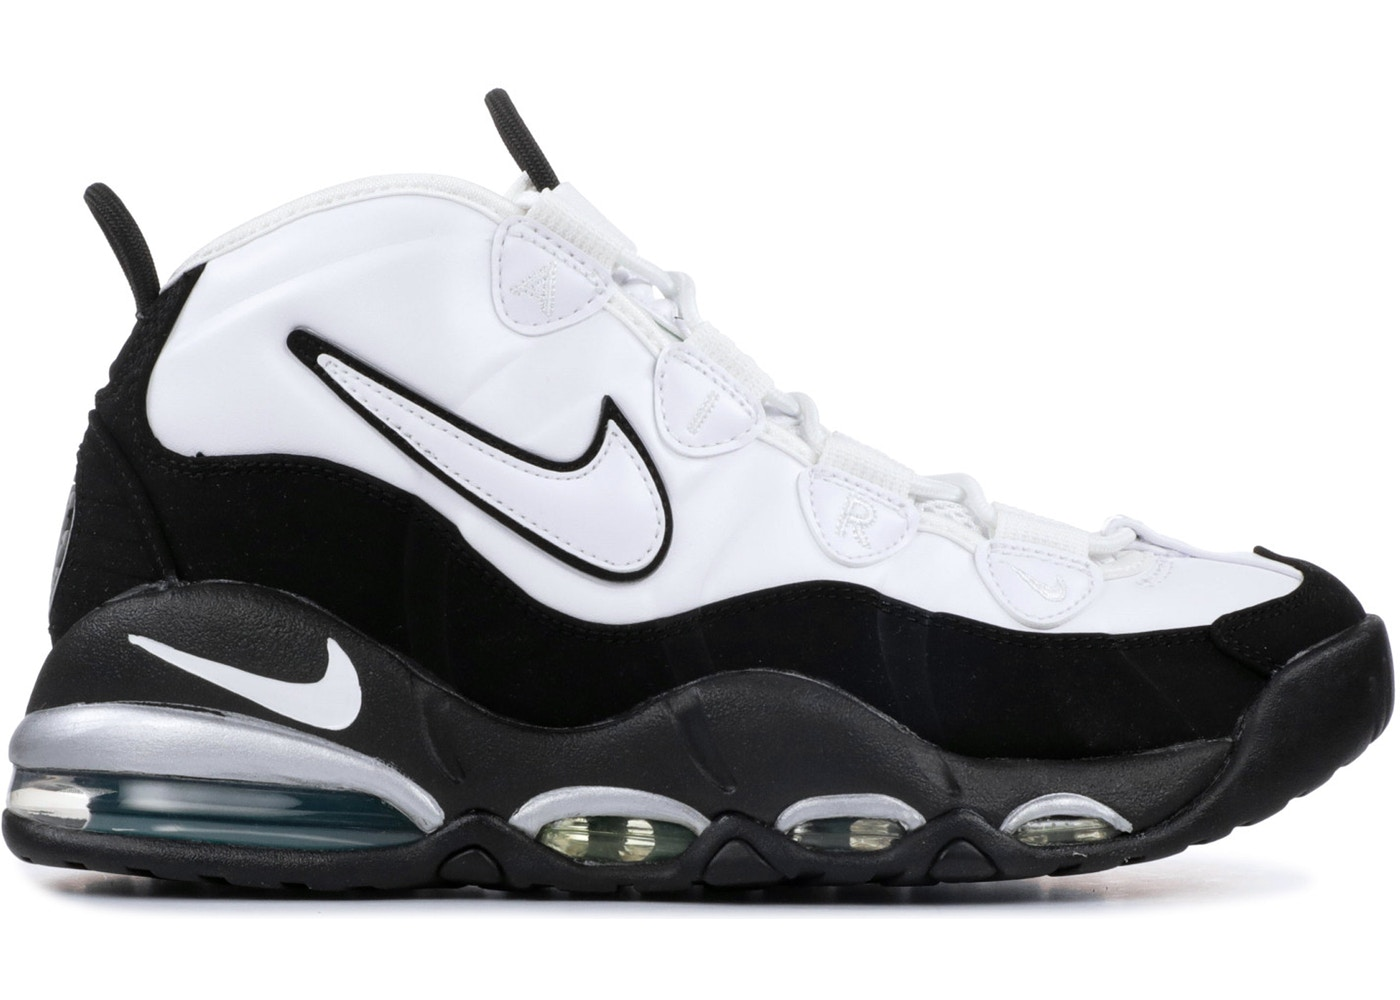 d126a4863d HypeAnalyzer · Air Max Uptempo 95 White Black Teal (2015)